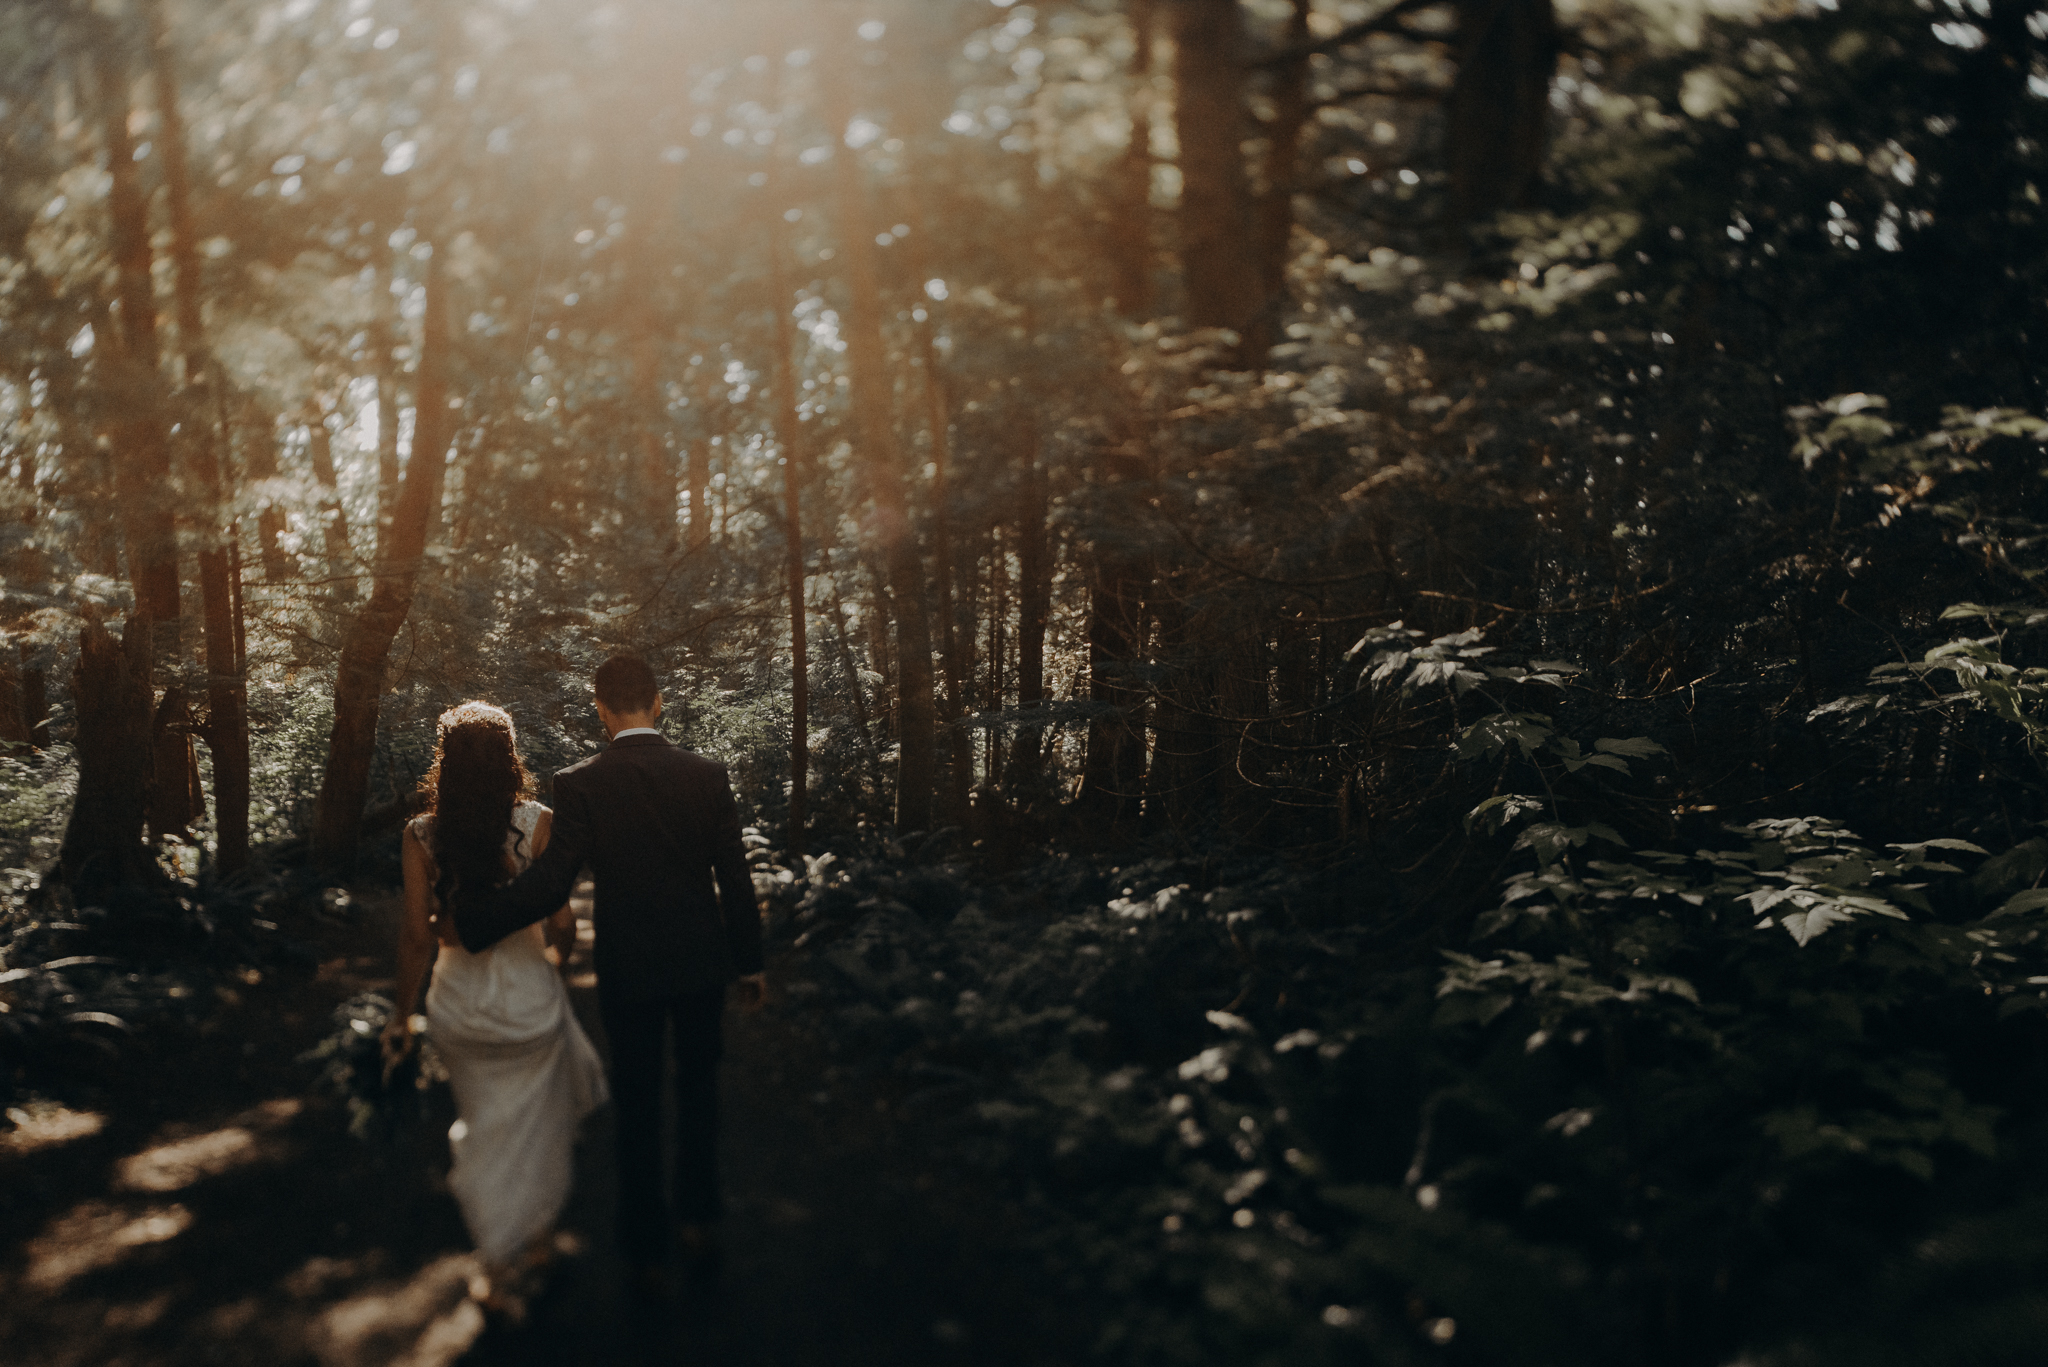 Isaiah + Taylor Photography - Cape Flattery Elopement, Olympia National Forest Wedding Photographer-020.jpg